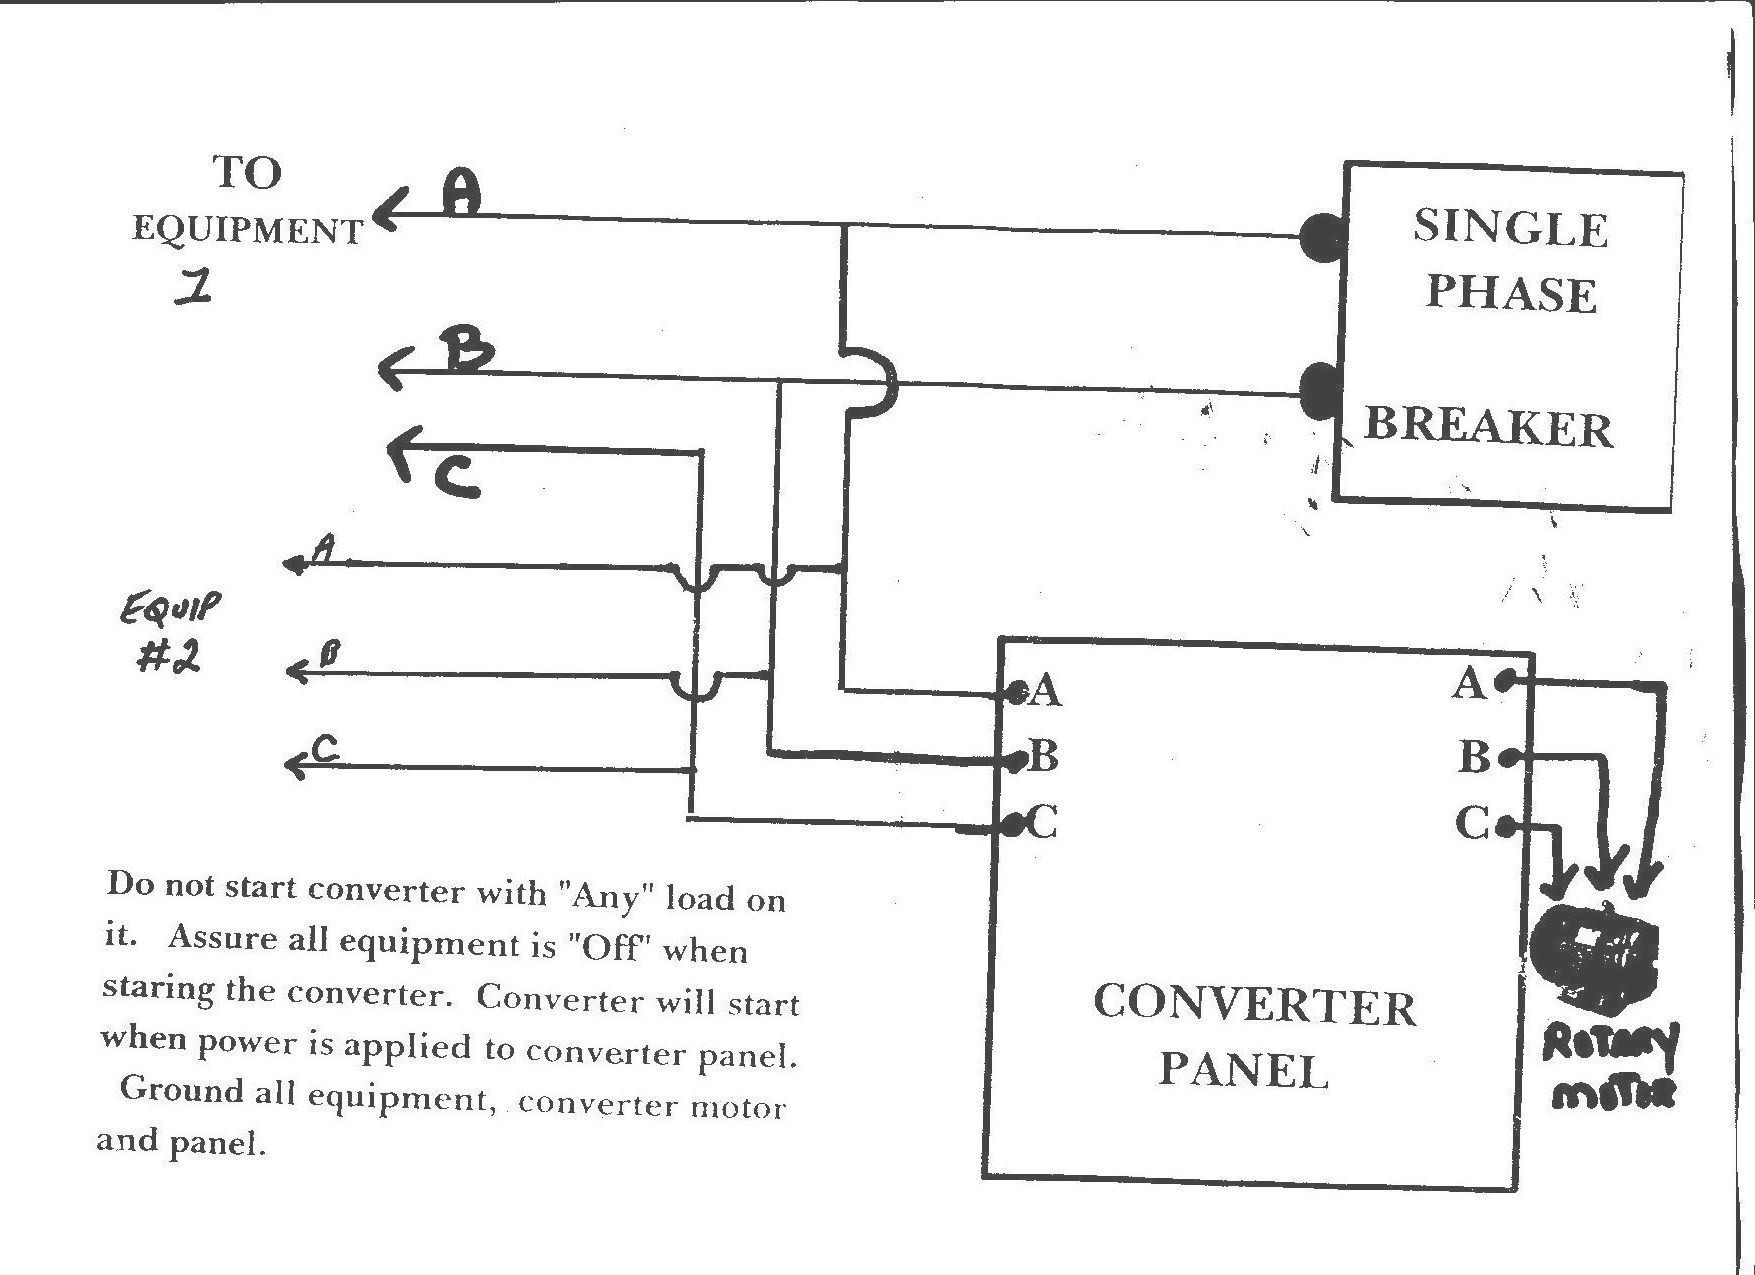 phoenix phase converter wiring diagram Download-Ronk Phase Converter Wiring Diagram Westmagazine Brilliant Ideas 12-c